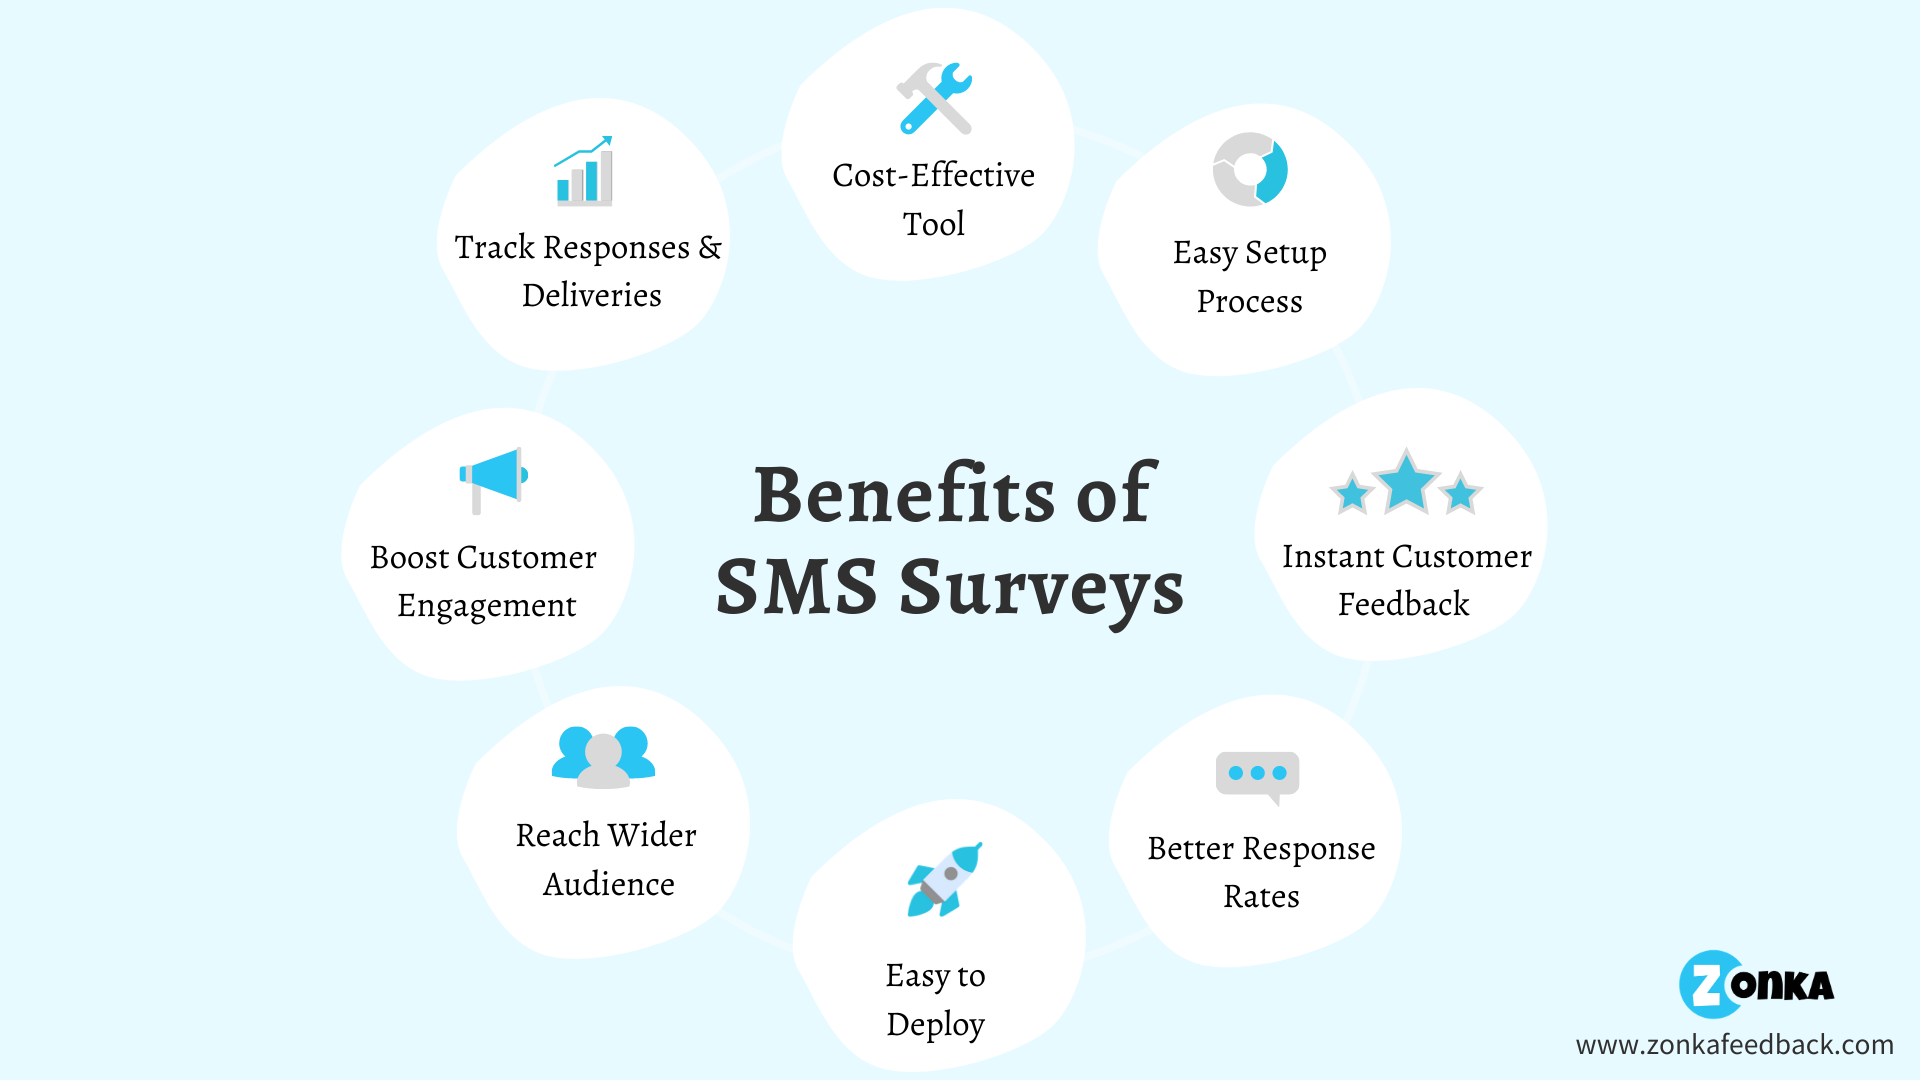 benefits-of-sms-surveys